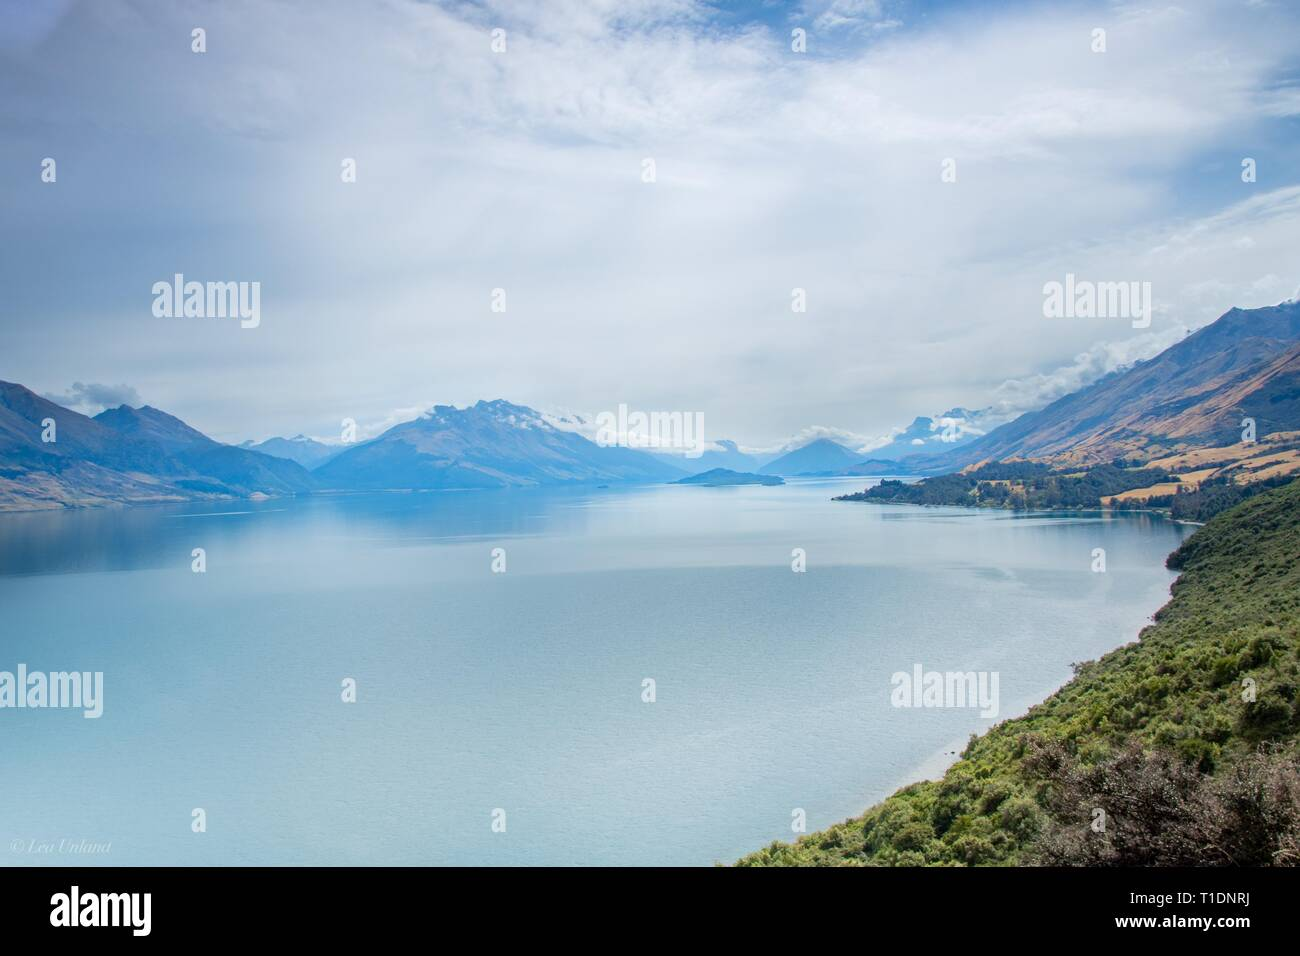 Overlooking Lake Wakatipu from the Flenorchy Road, NZ - Stock Image